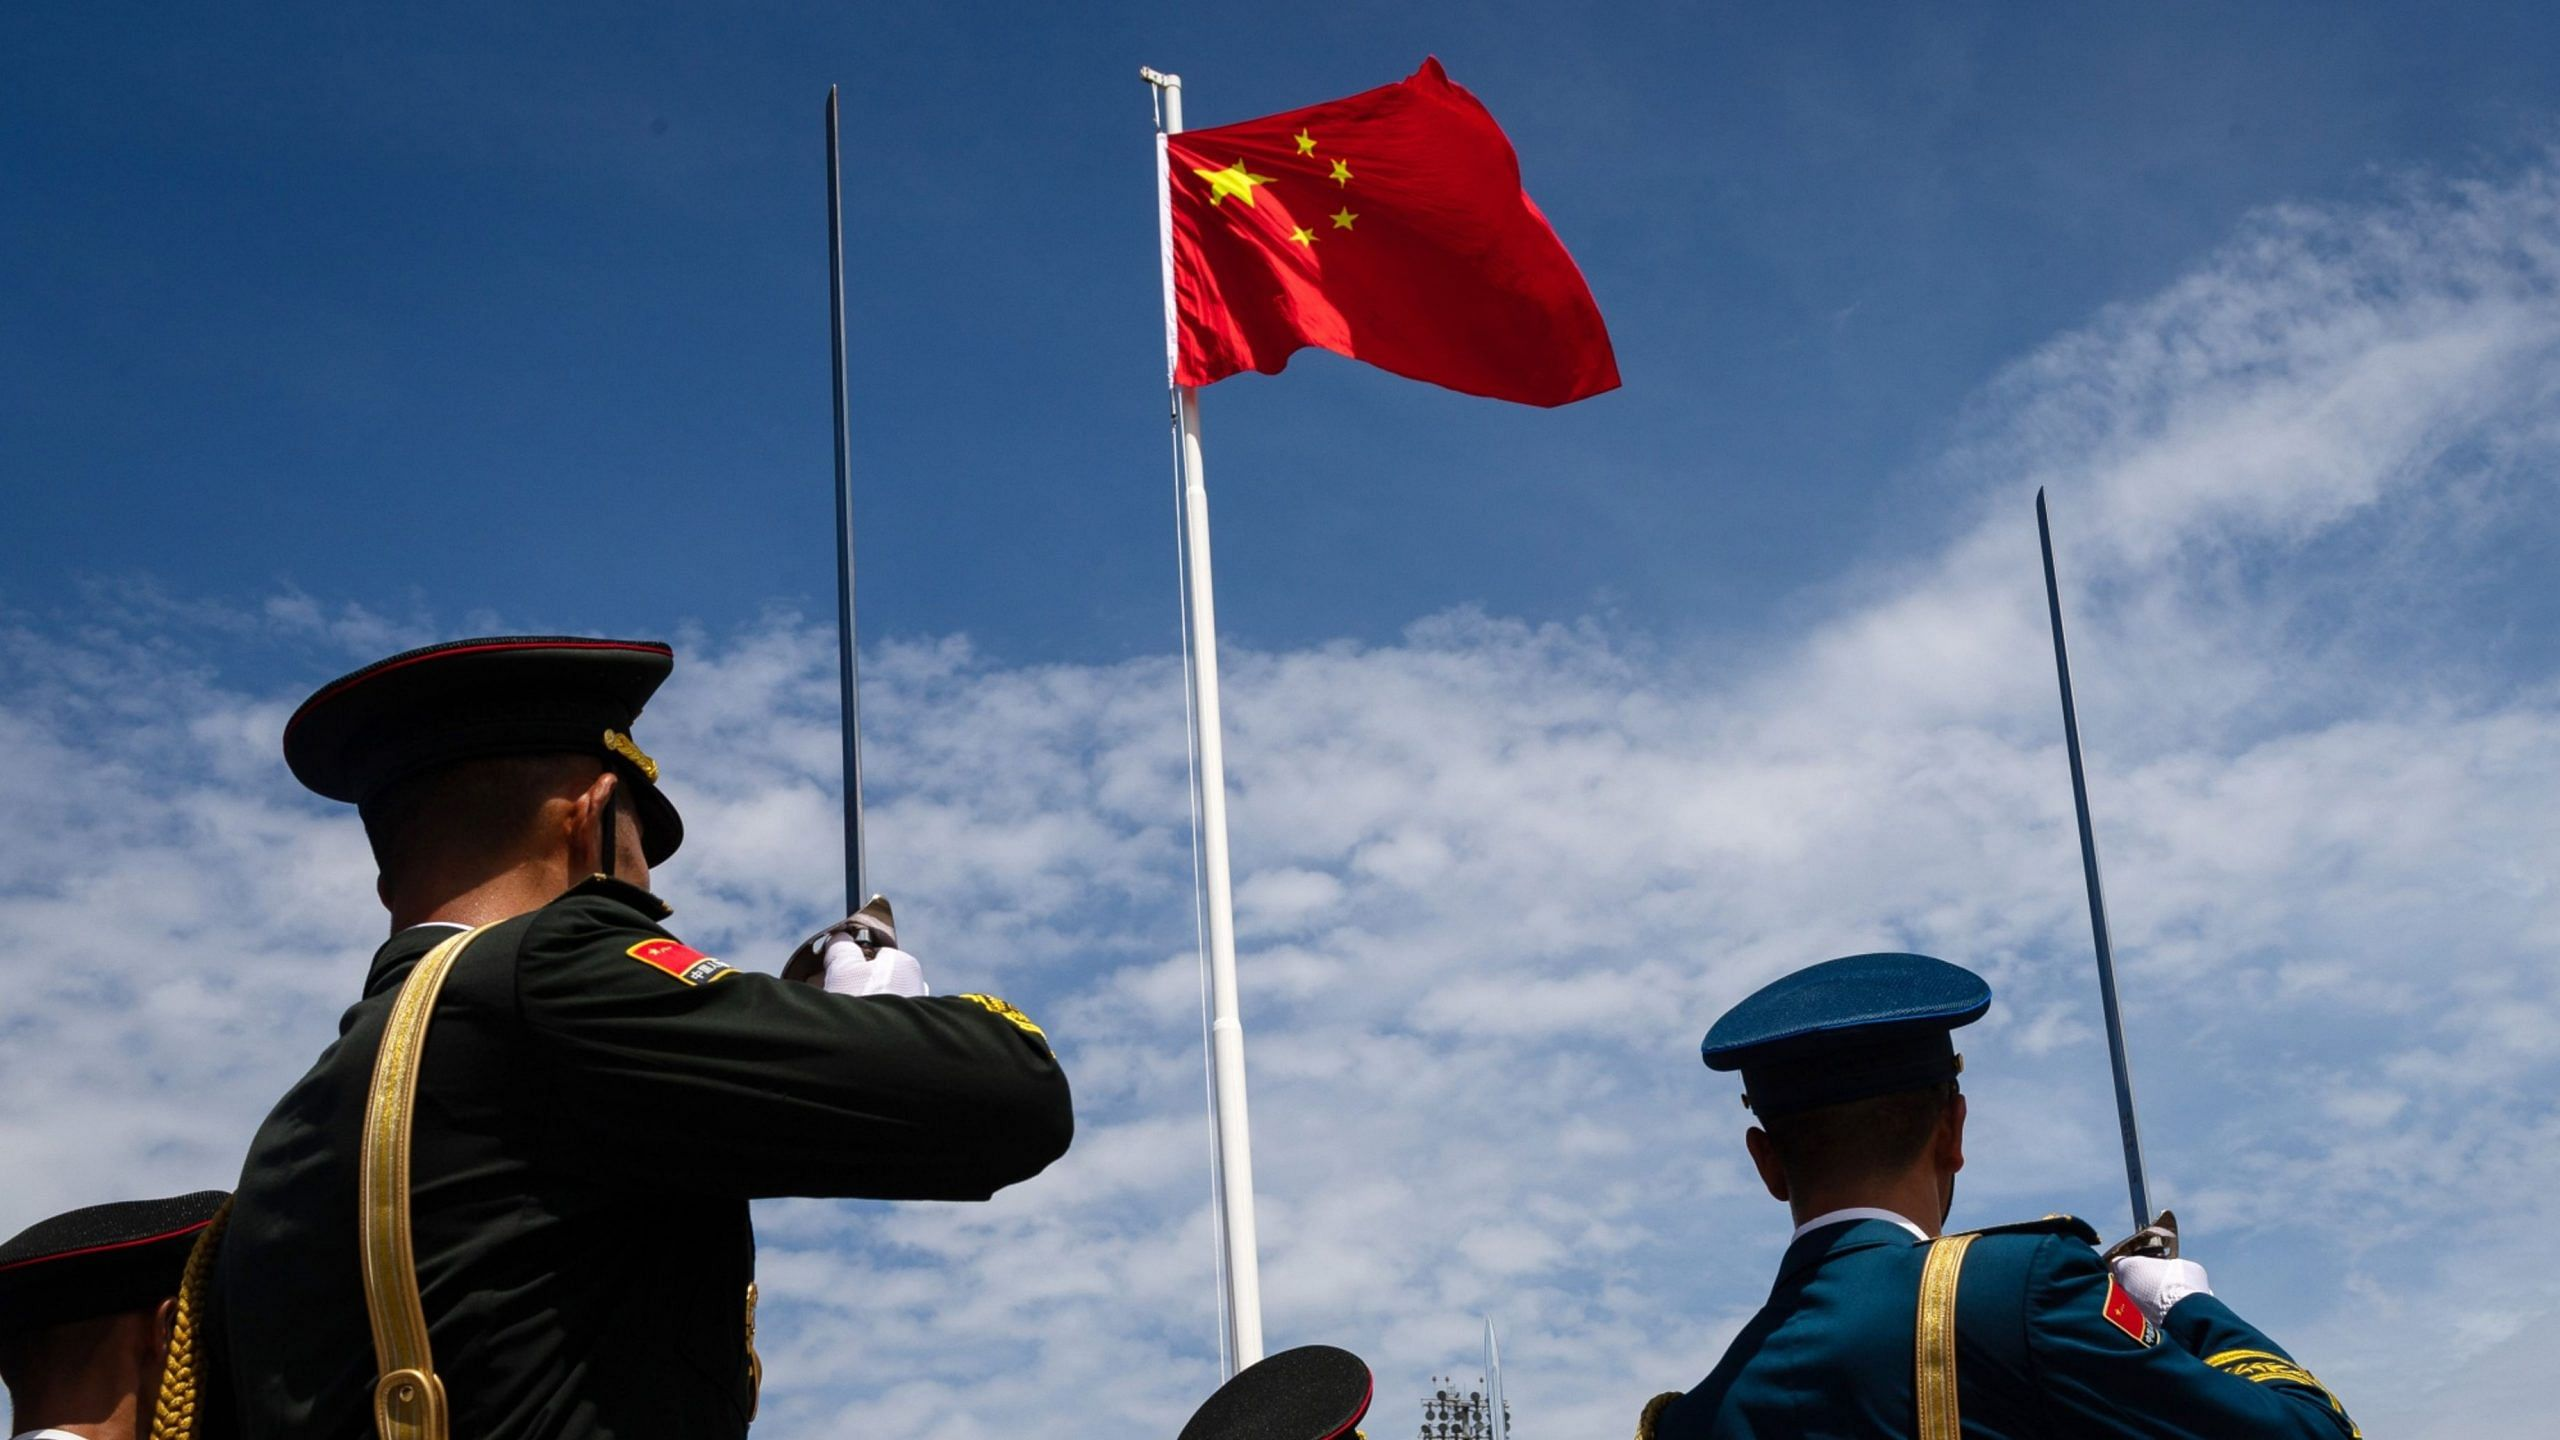 Ex-Chinese army general, who oversaw border with India, appointed to top Beijing committee